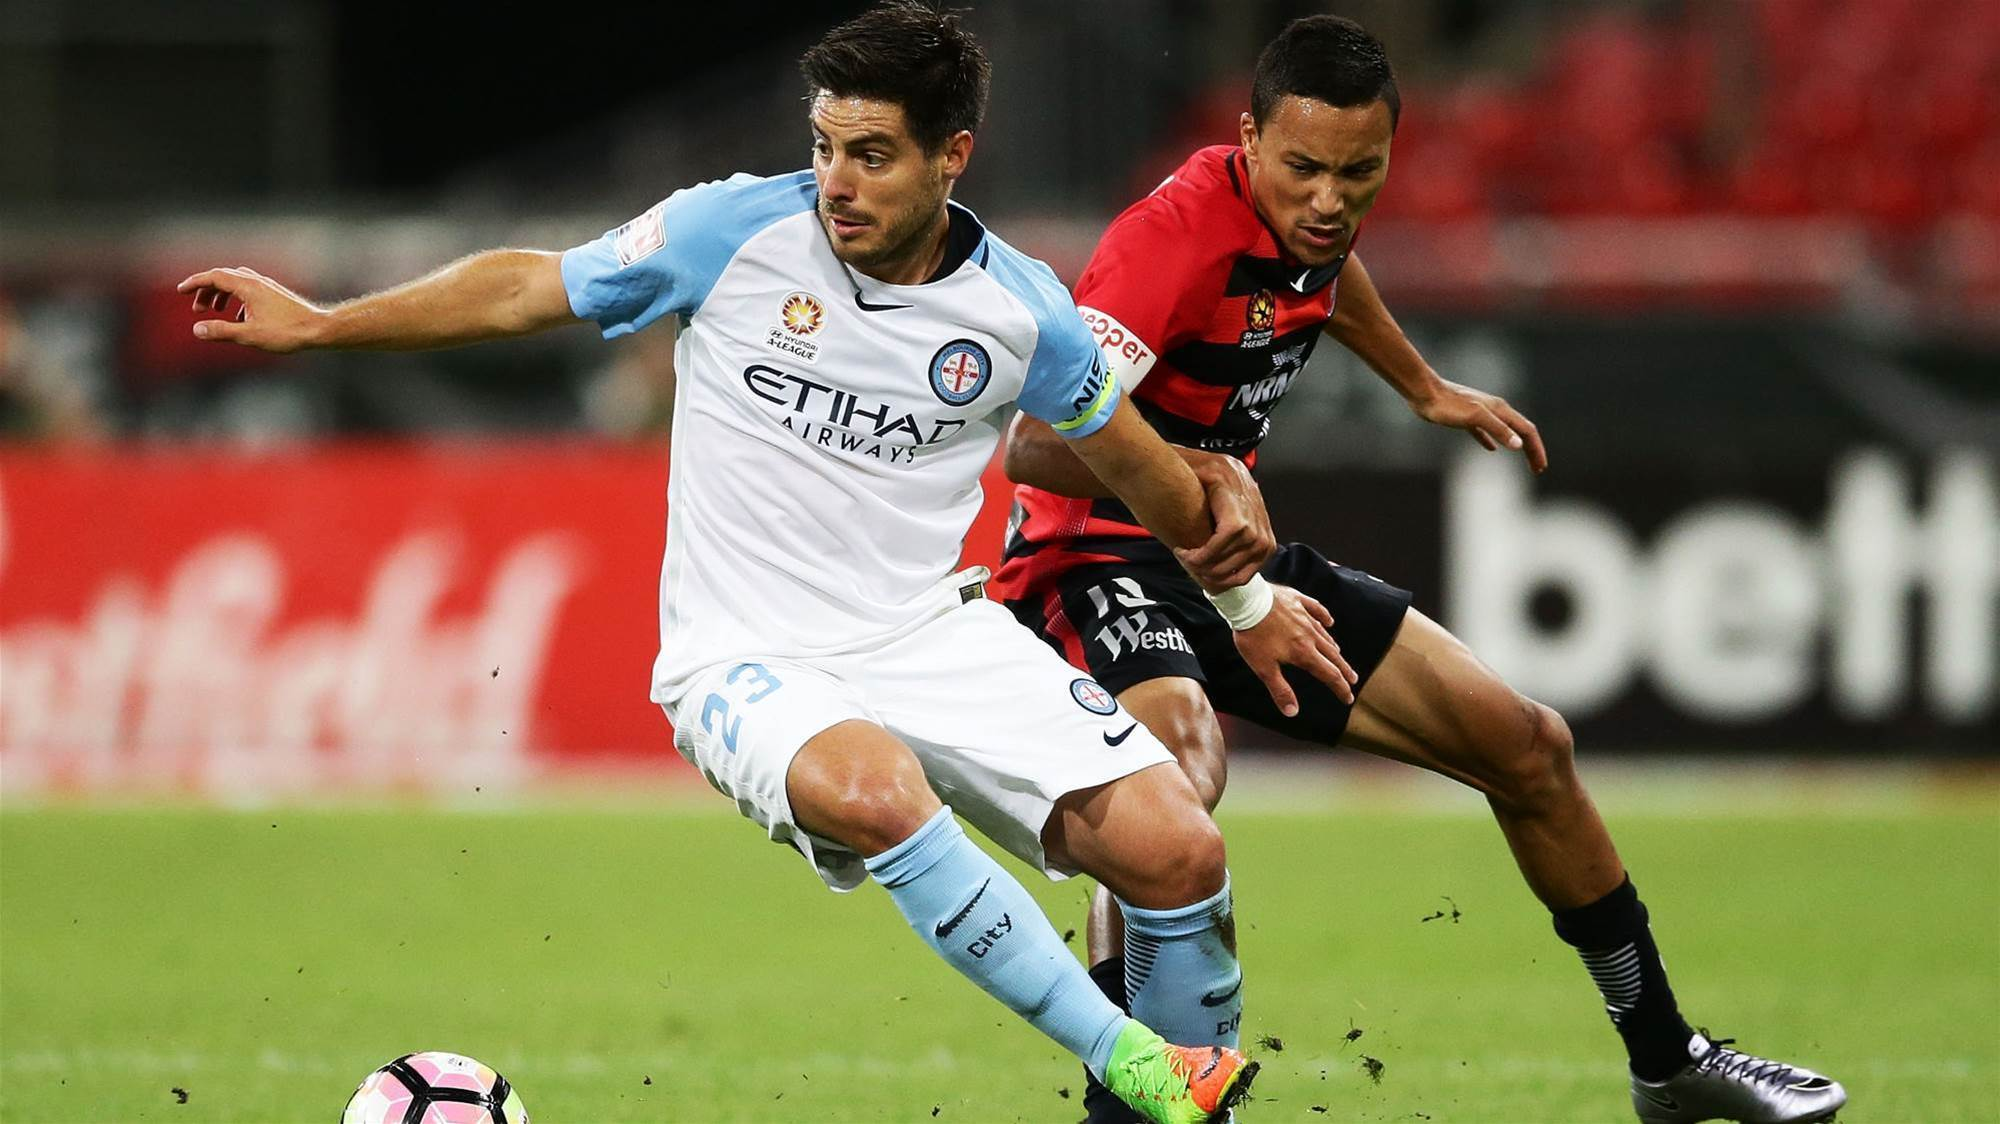 Wanderers to take on City in Shepparton